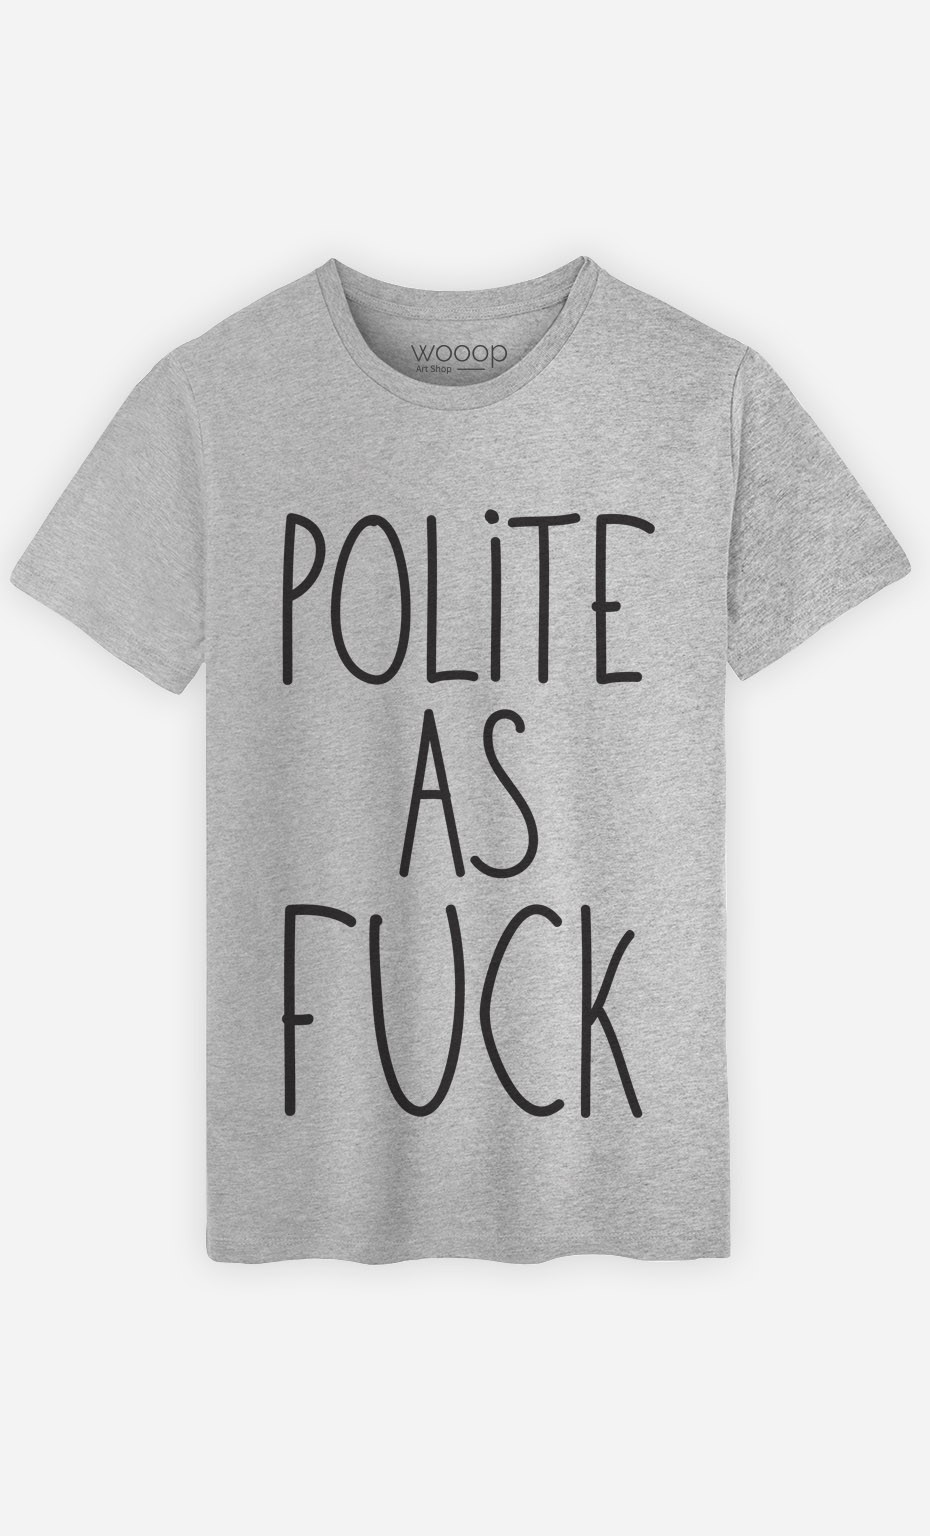 T-Shirt Polite as Fuck